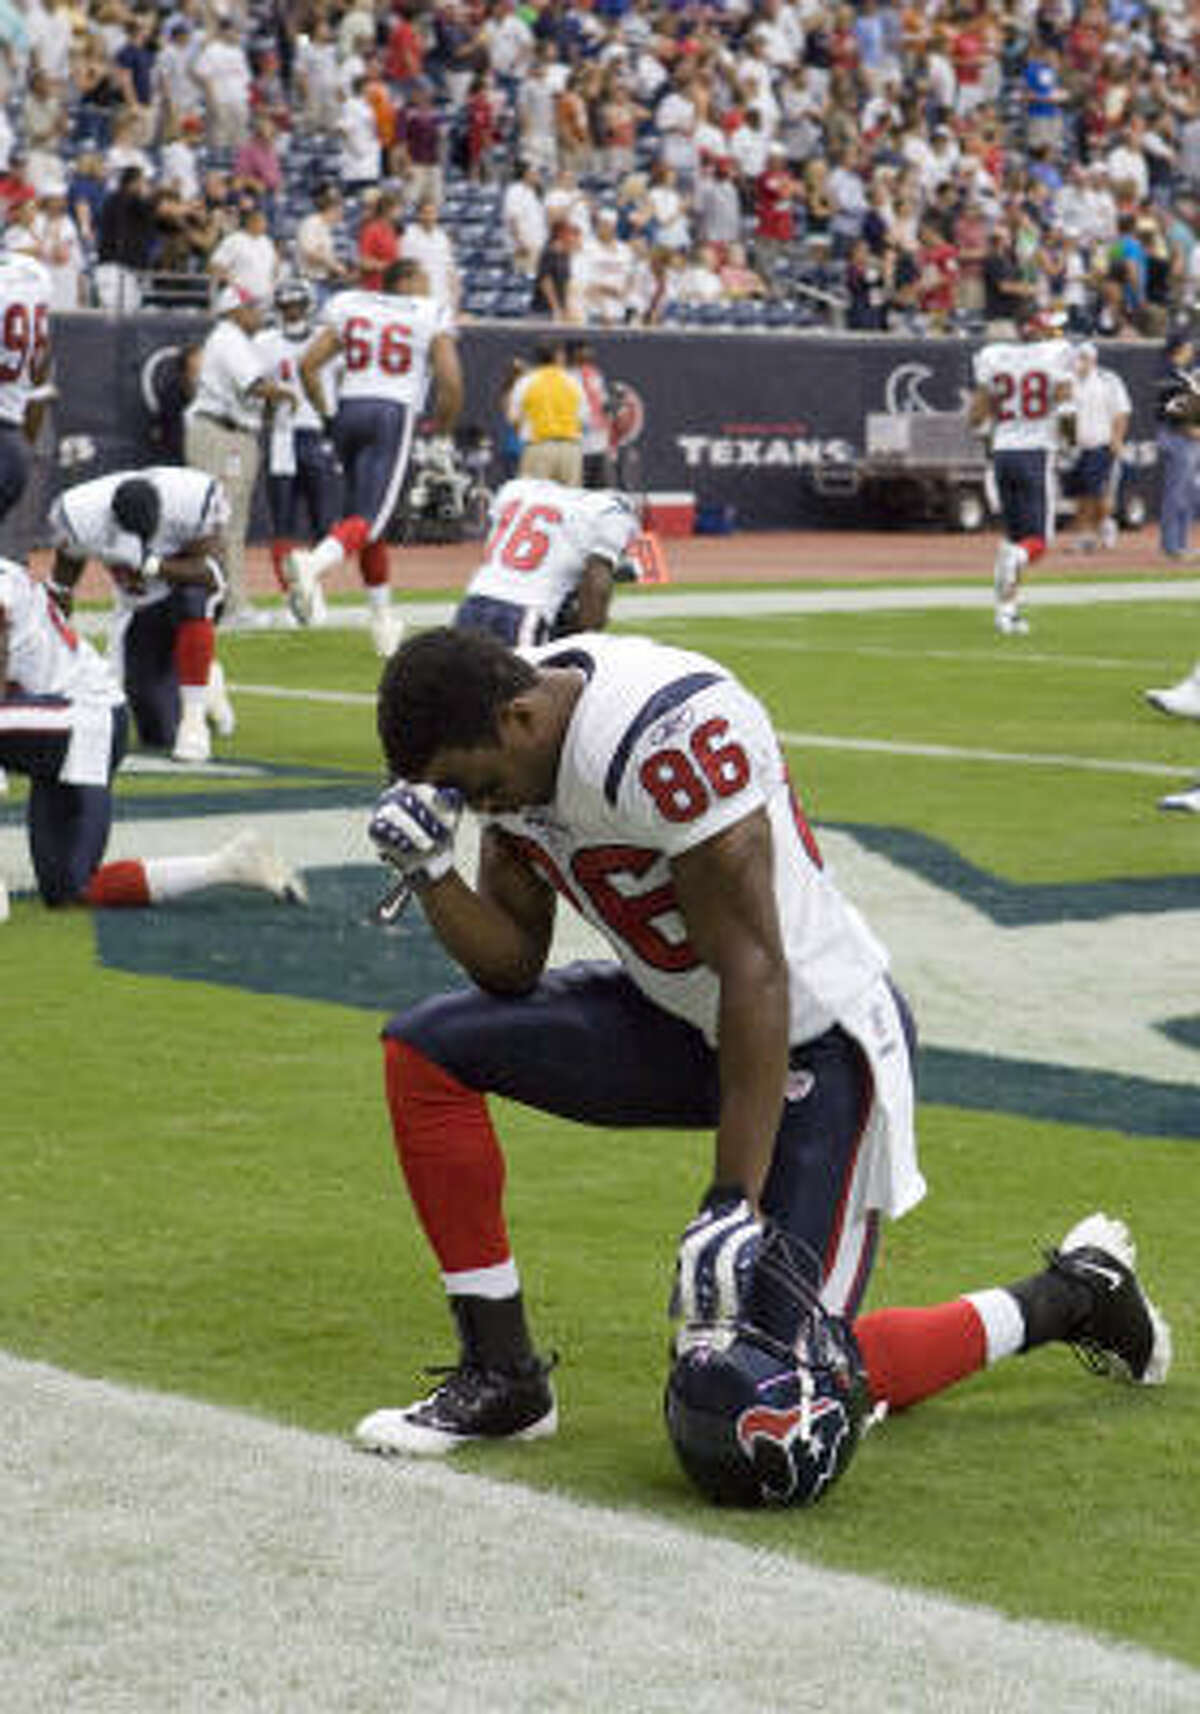 Texans receiver Harry Williams (86) and defensive lineman Cedric Killings both saw their careers end in sudden, frightening fashion because of wedge-related neck injuries last season.